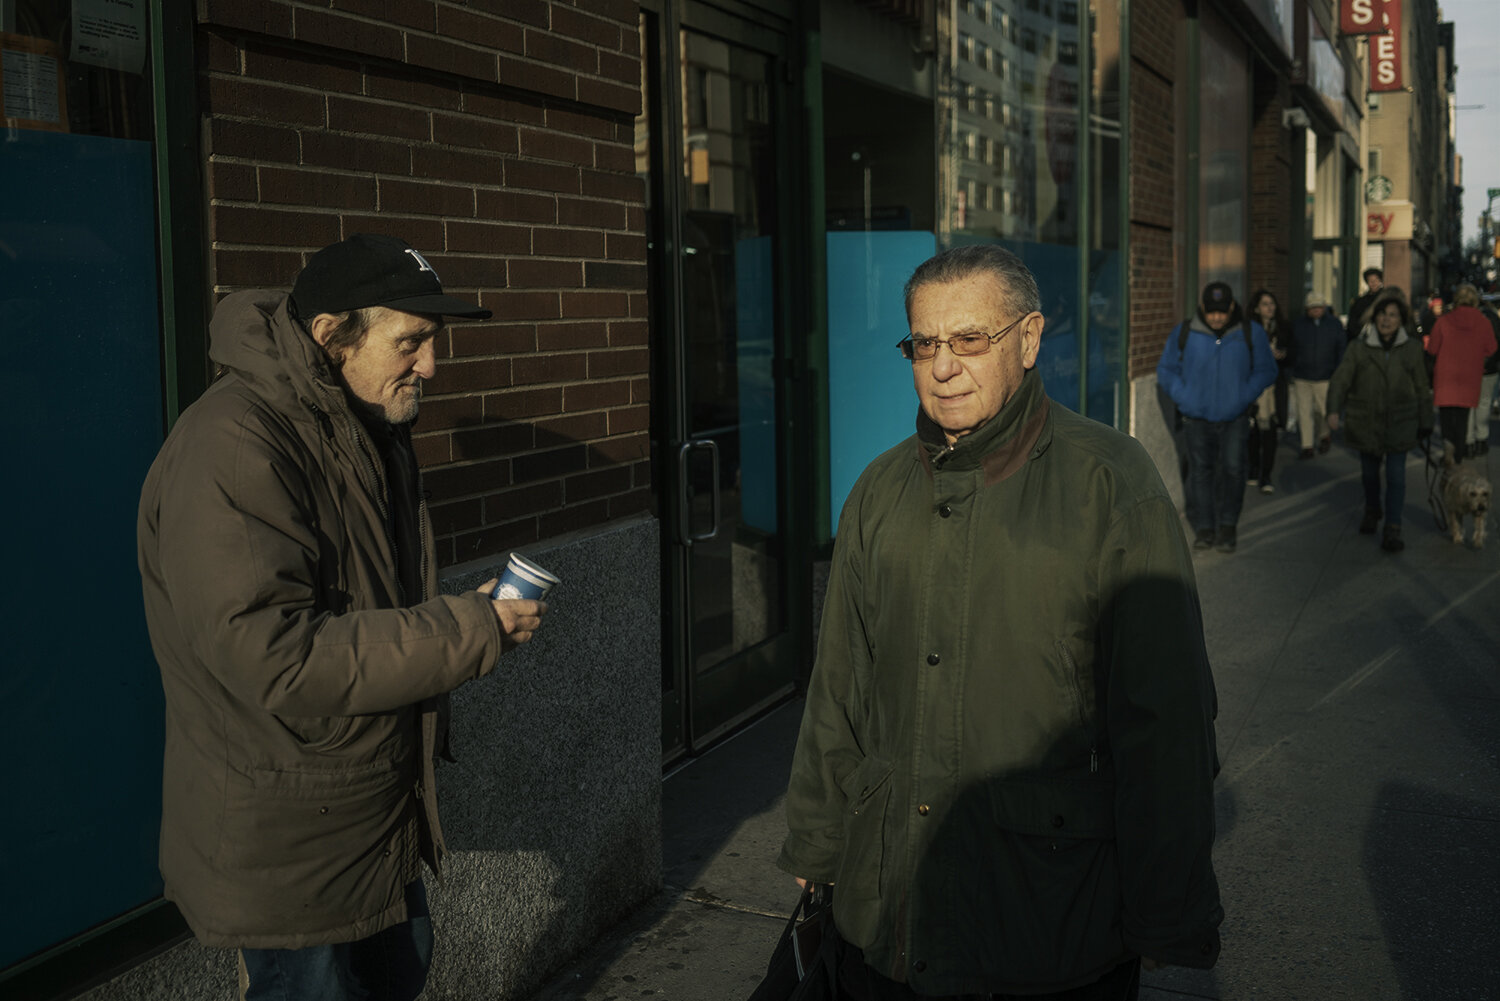 NYC_Street_2018_Old_Man_Begging_and_Friend-006.jpg